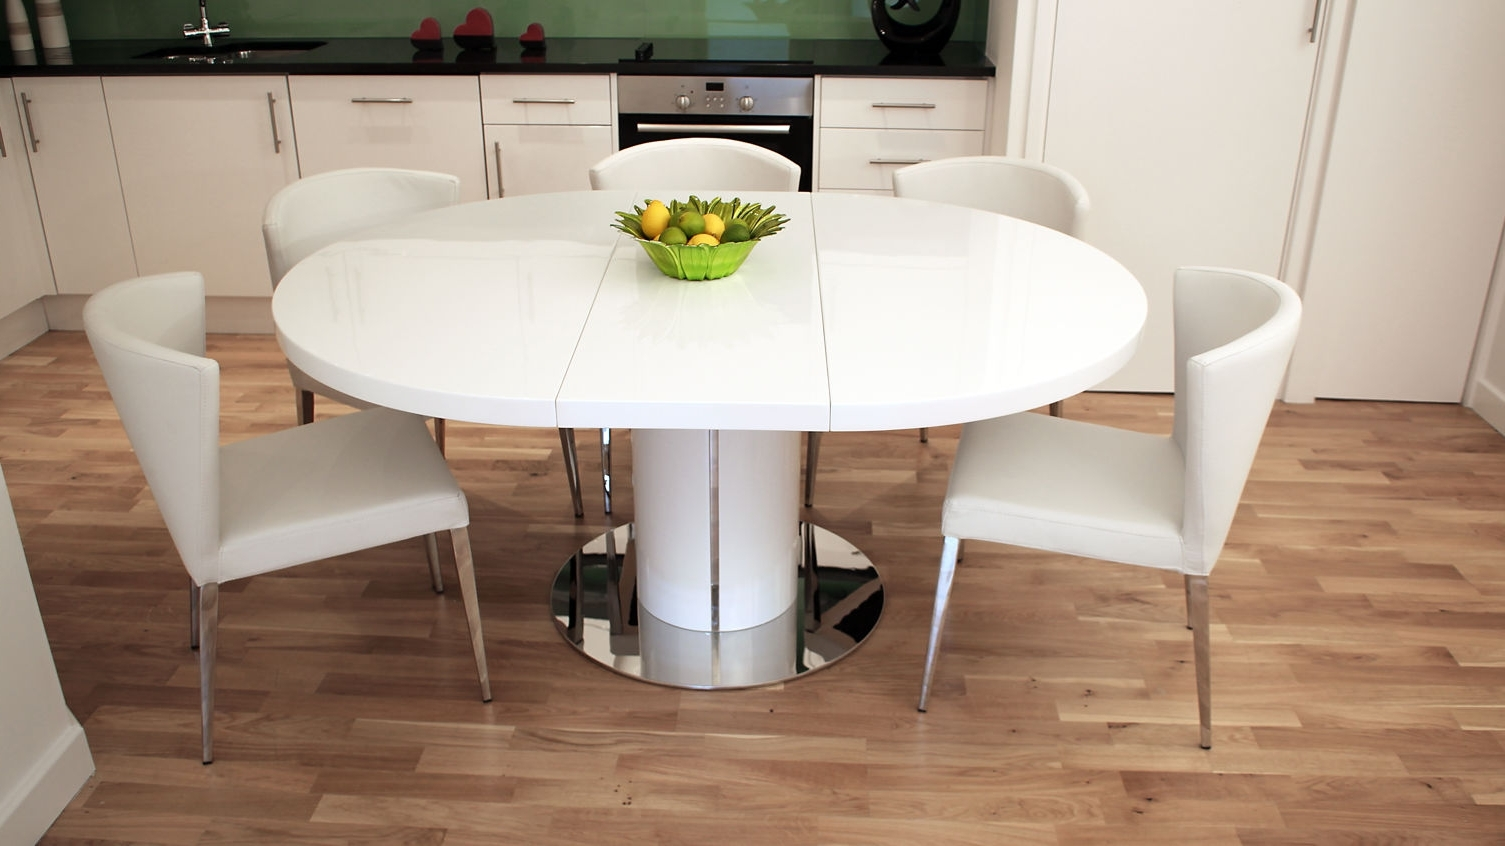 Best And Newest White Circle Dining Tables Regarding Diy Painting White Round Dining Table — The Home Redesign (View 5 of 25)